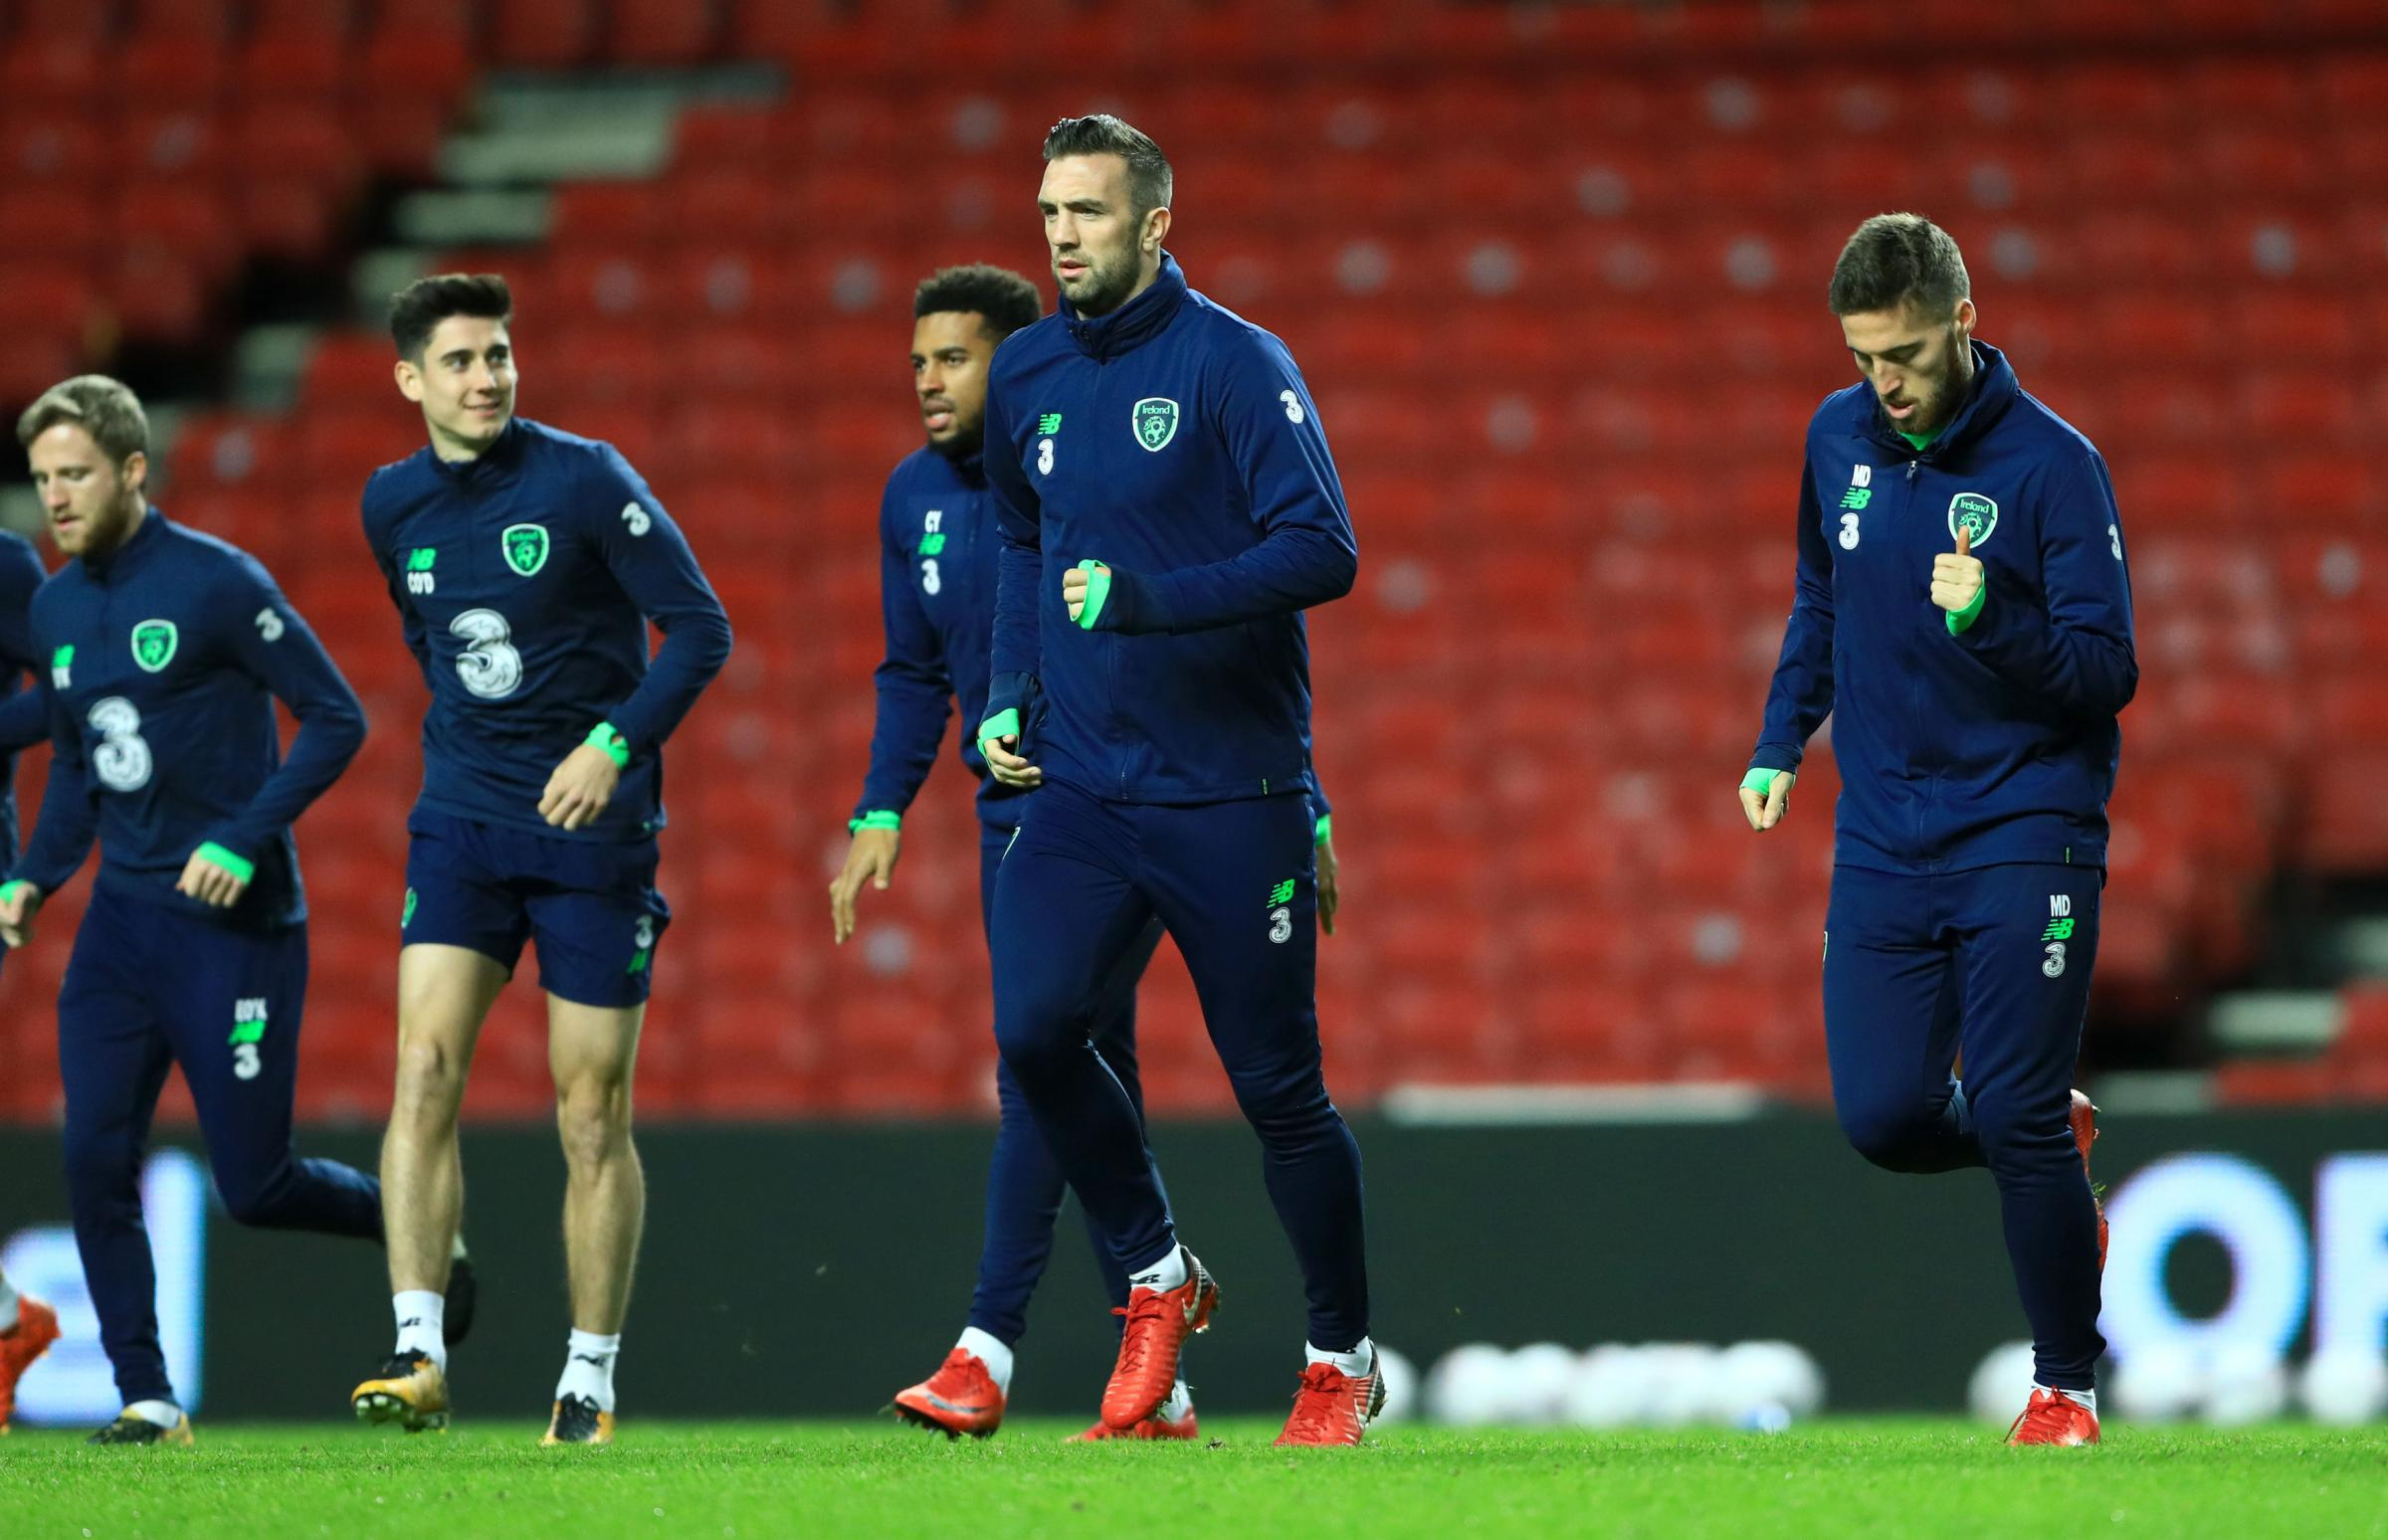 Shane Duffy goes through his paces in training last night